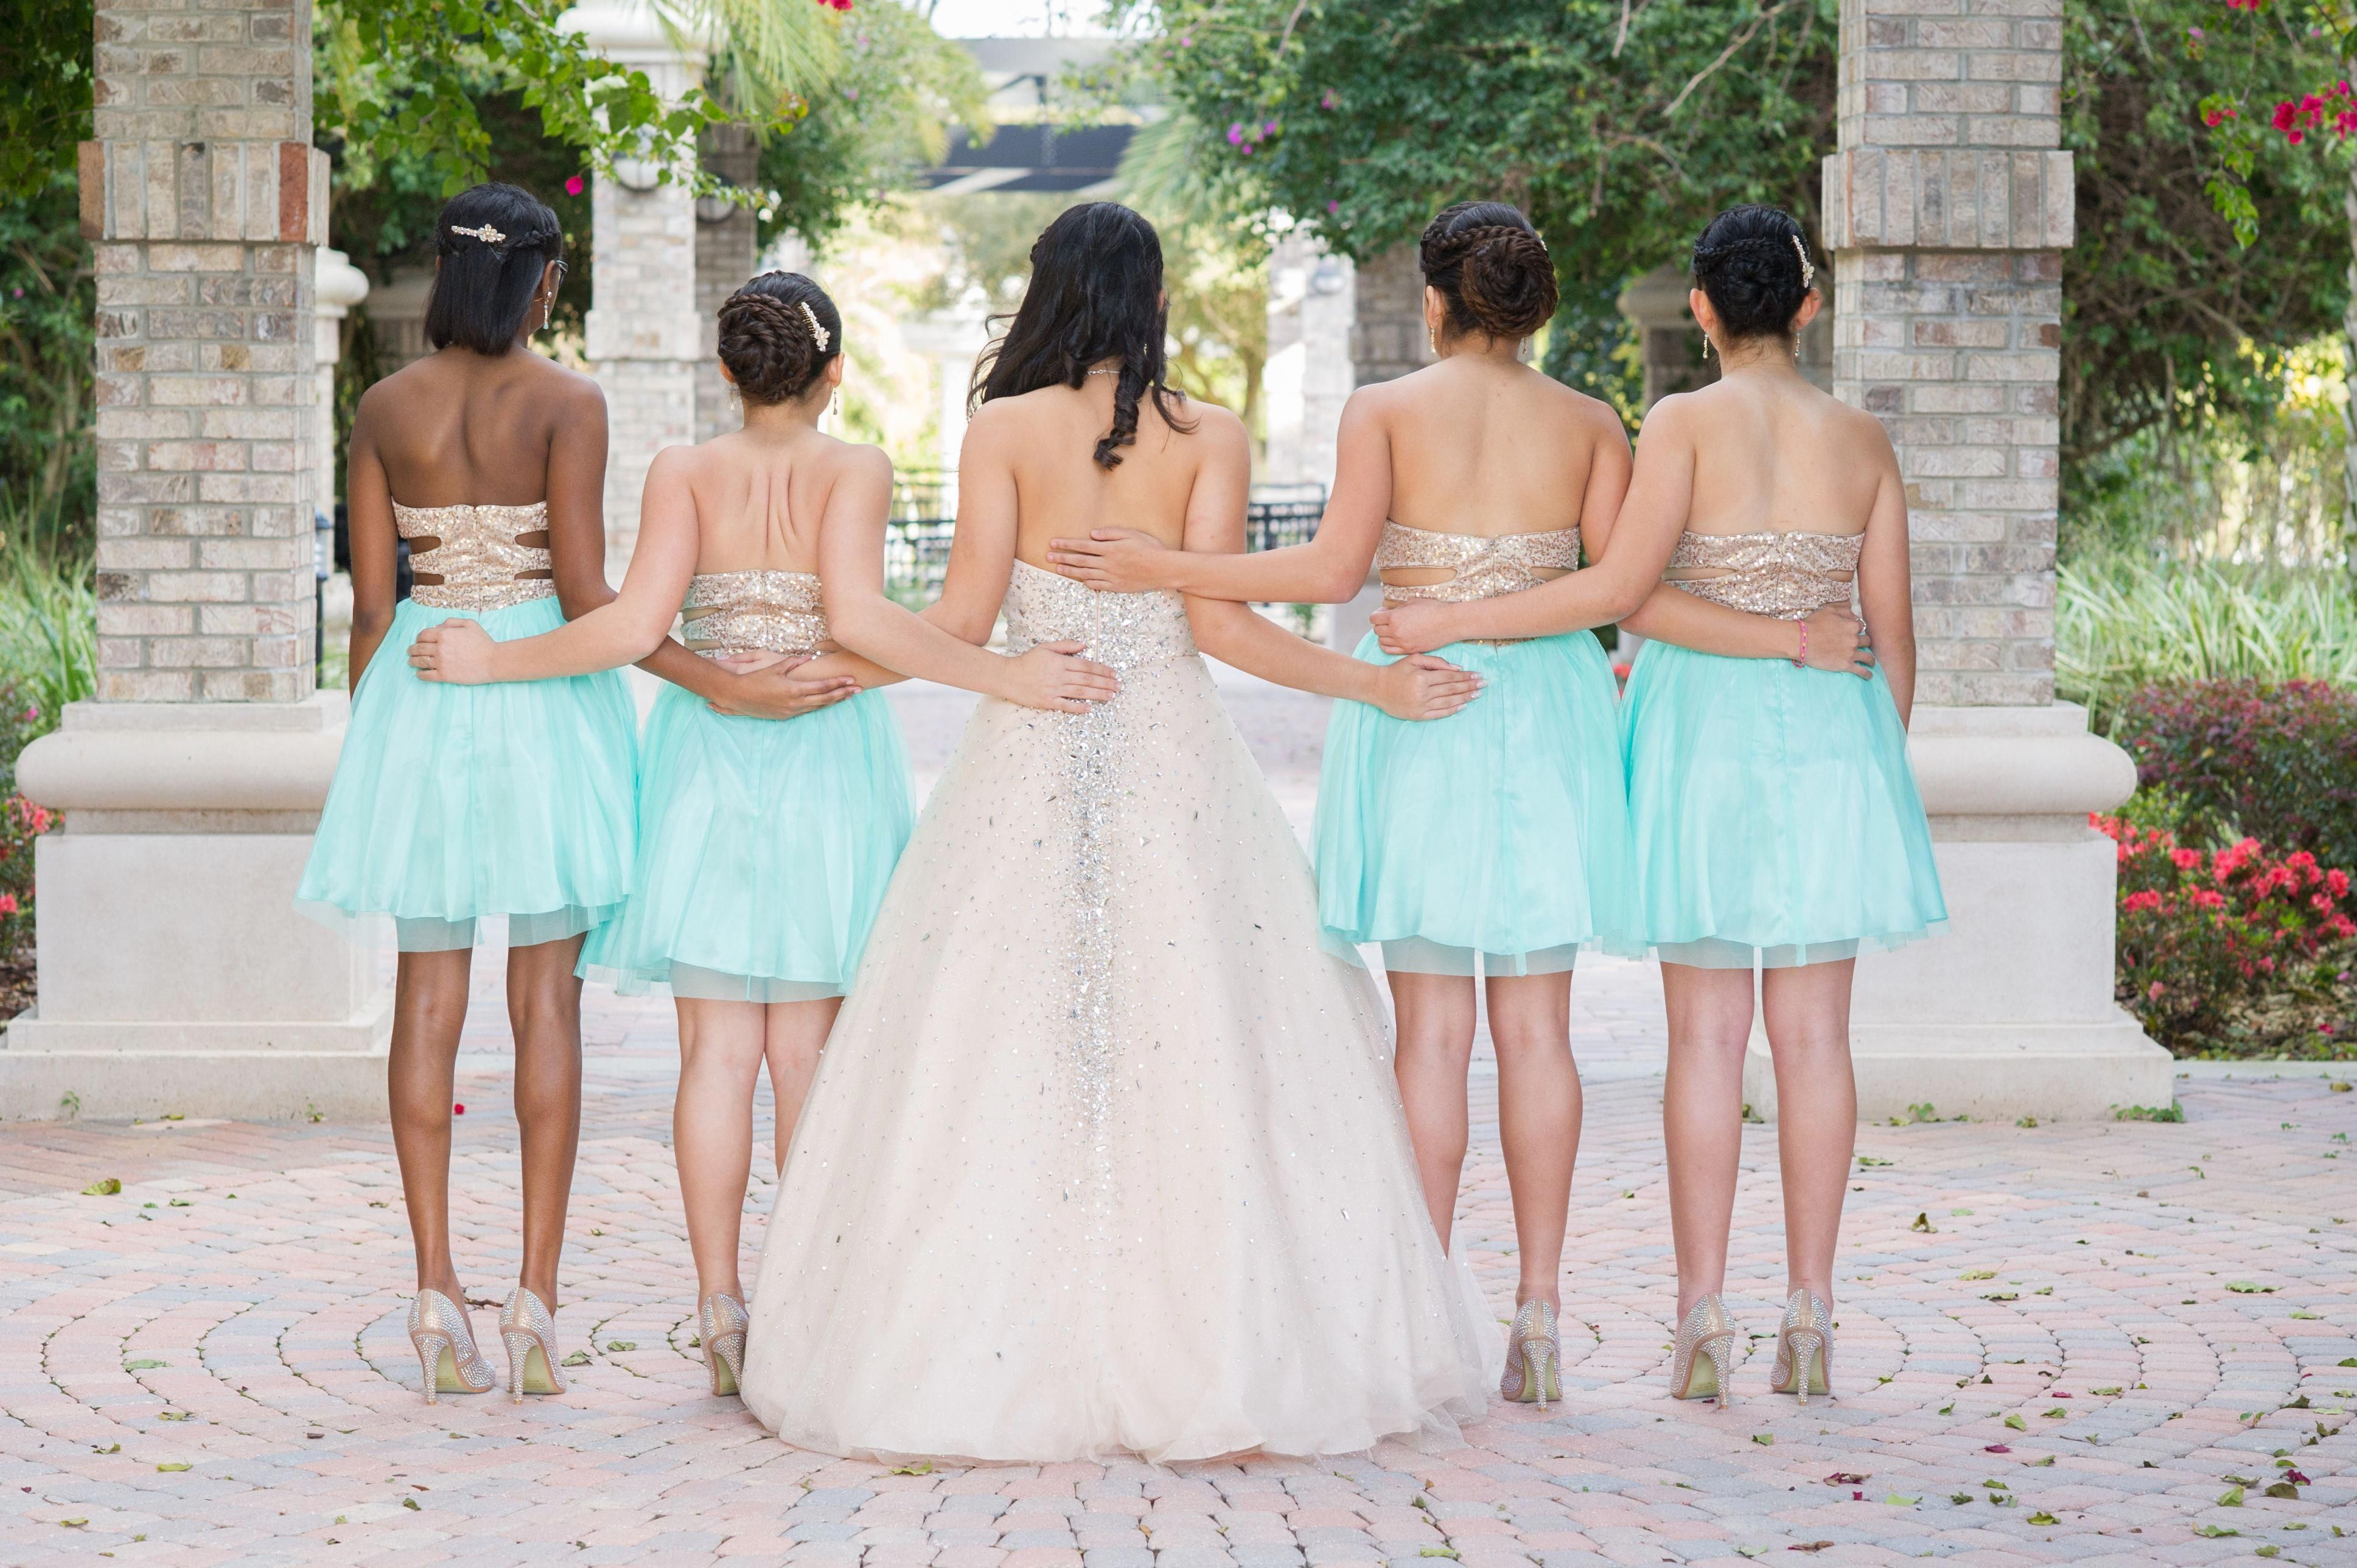 Enjoyable communicated quinceanera photography look what i